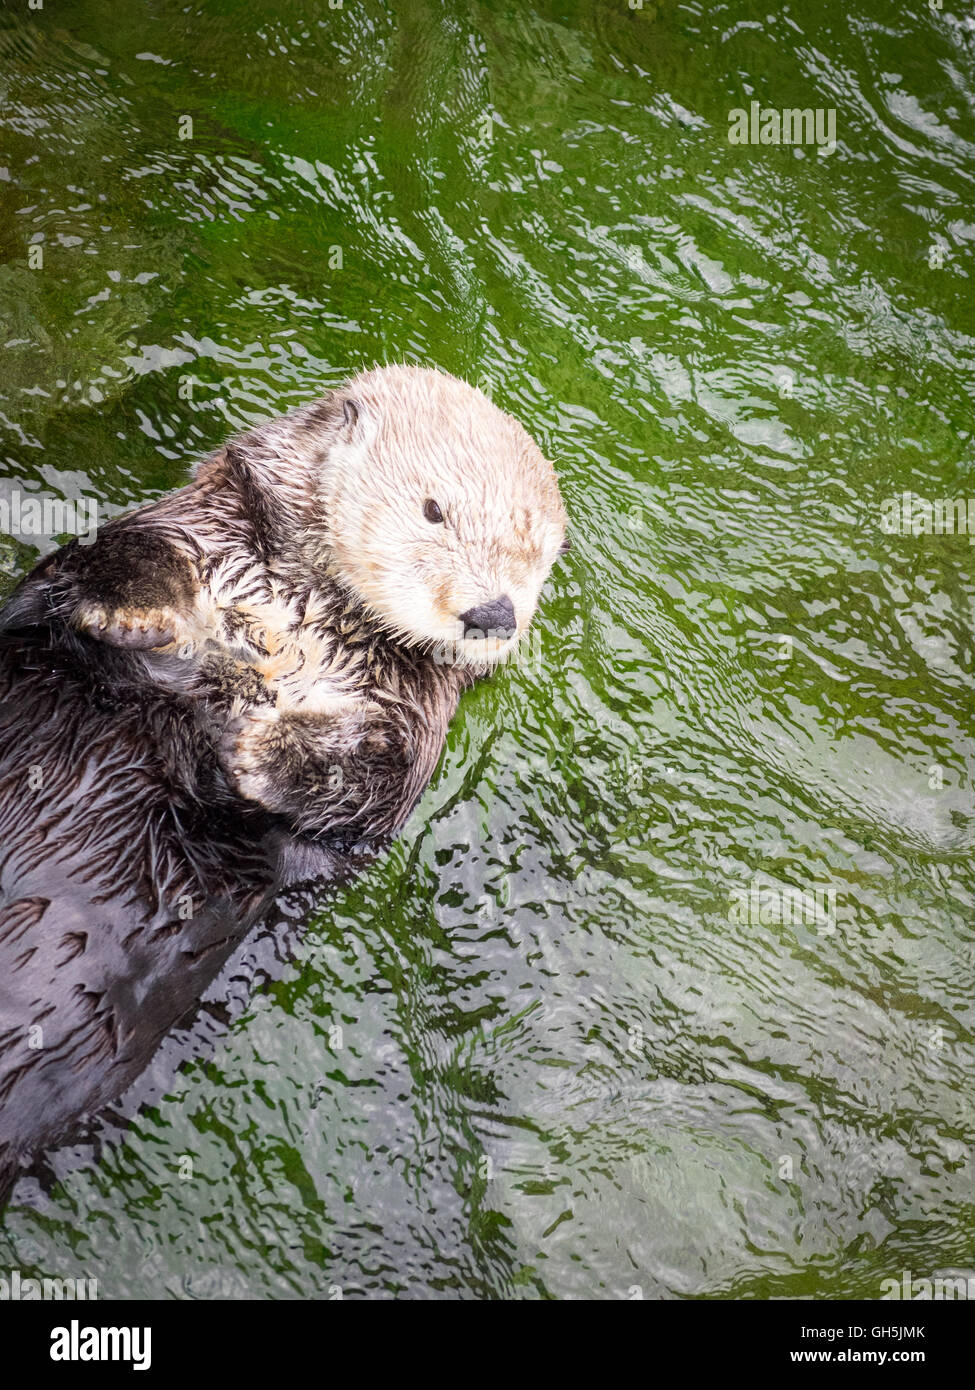 A female sea otter (Enhydra lutris) at the Vancouver Aquarium in Vancouver, British Columbia, Canada. - Stock Image